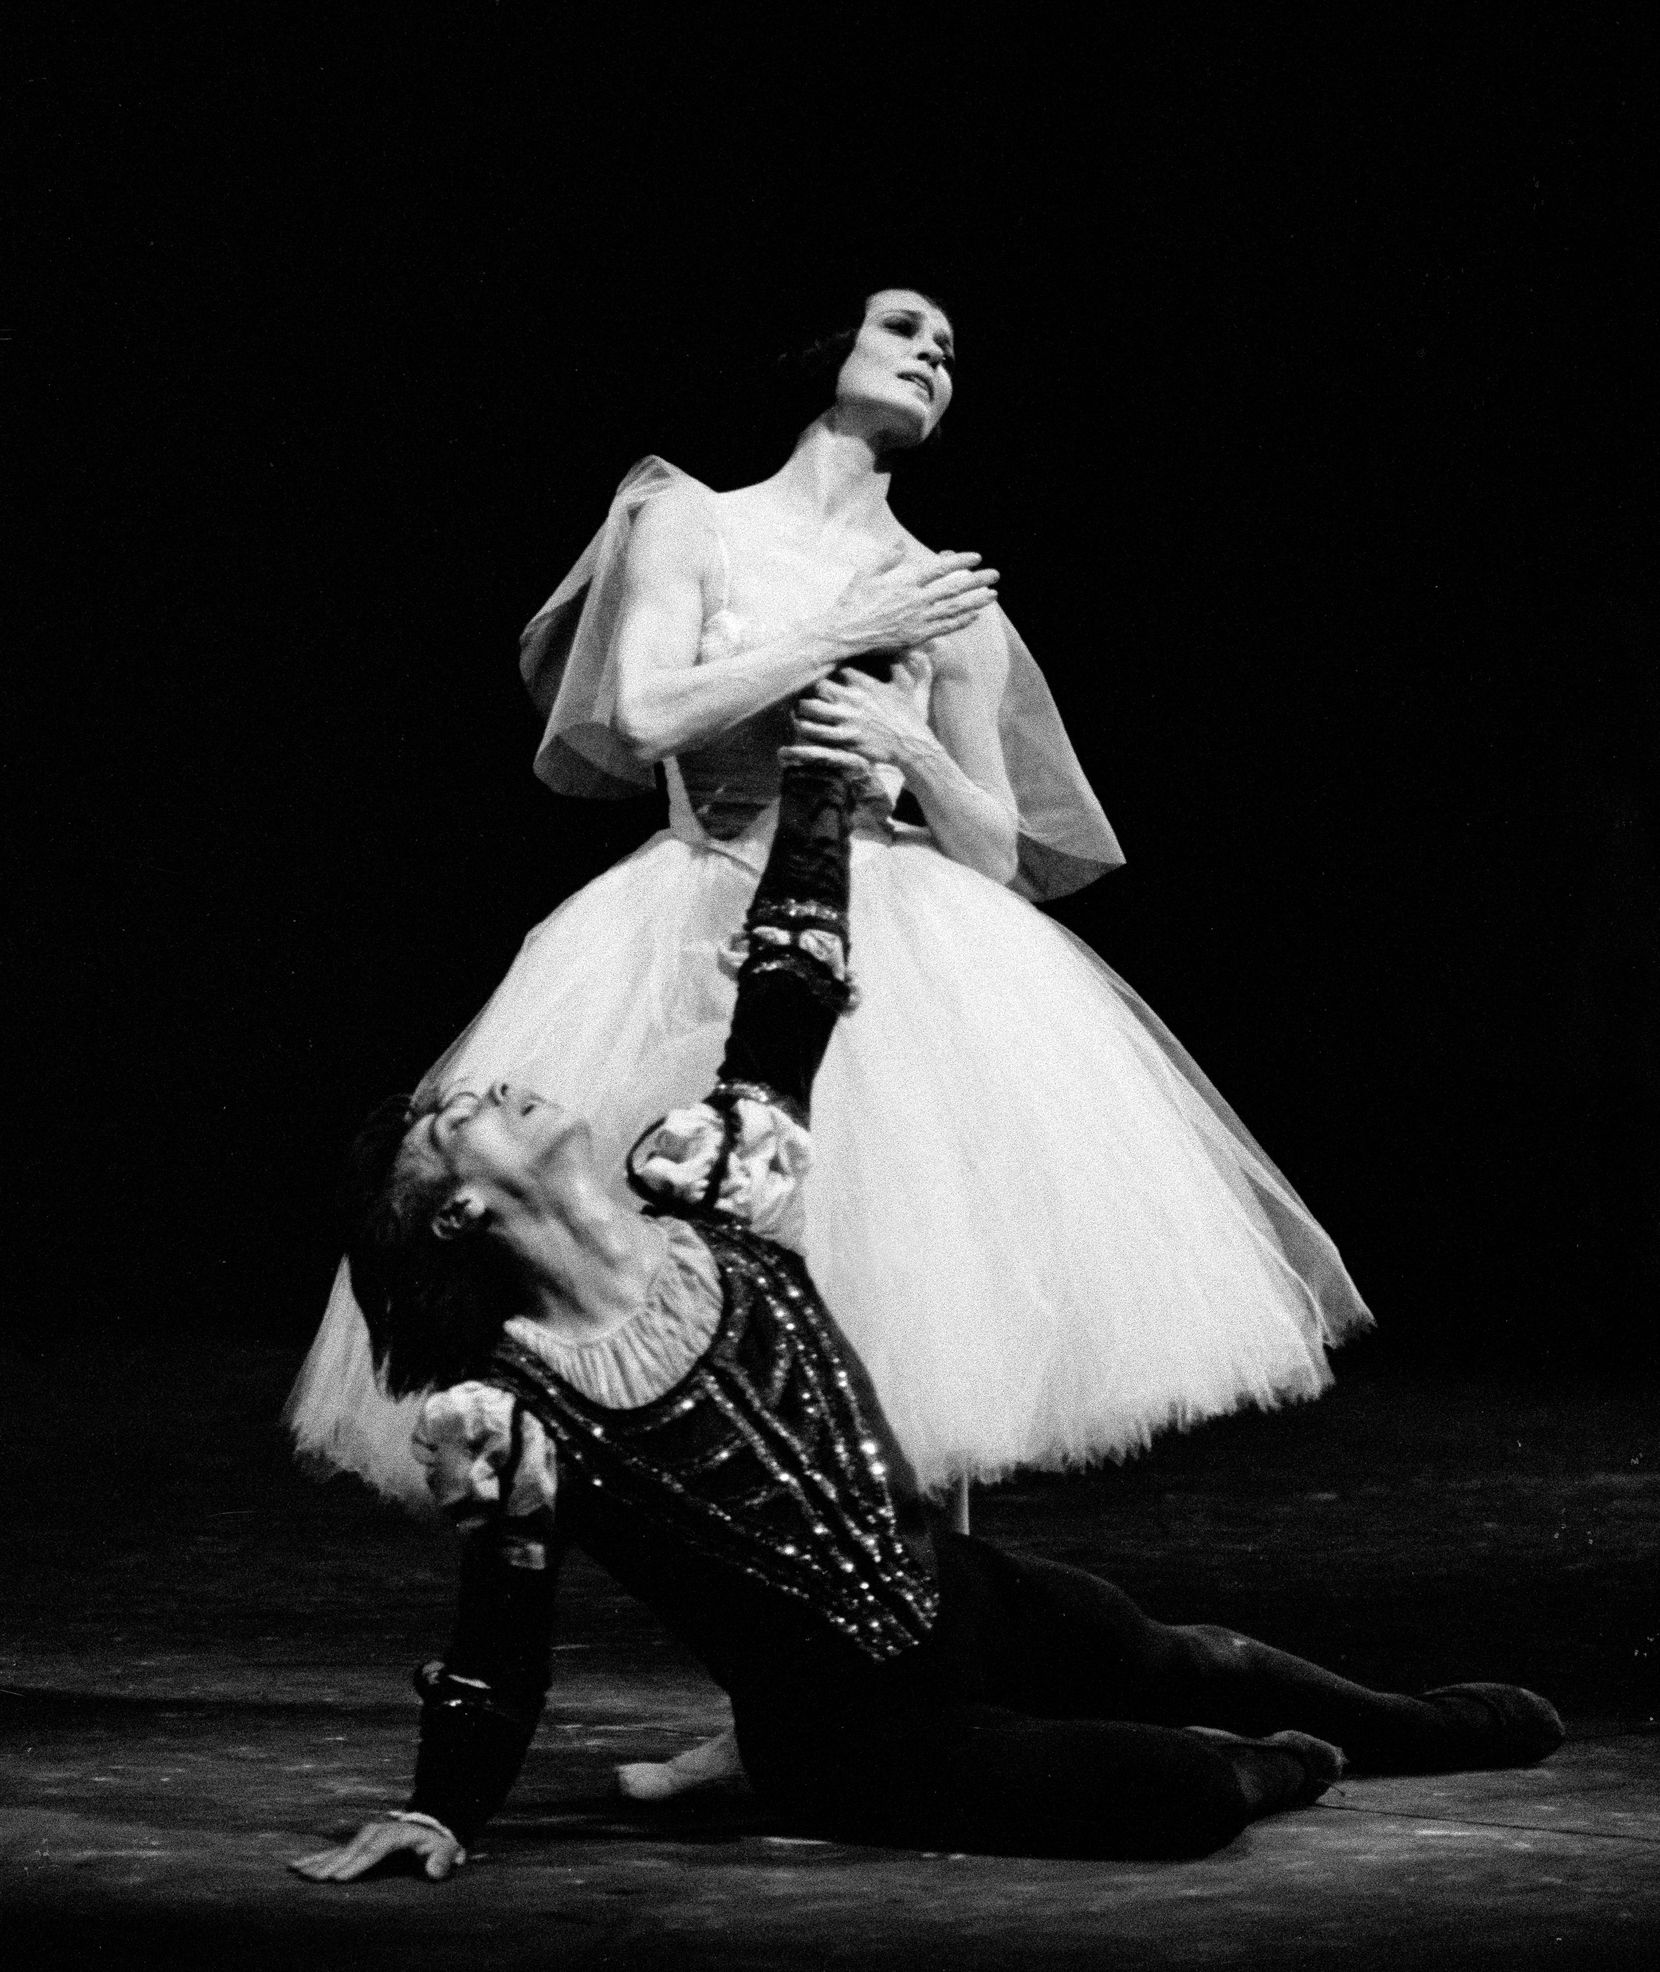 In this black and white photo, Carla Fracci stands above Gheorghe Iancu, who lies in a heap on the stage floor, during a performance of Giselle. She grabs his left hand and holds it to her heart while he looks up at her desperately. She wears a white Romantic tutu while he wears a dark mediaeval-style prince tunic and dark tights.